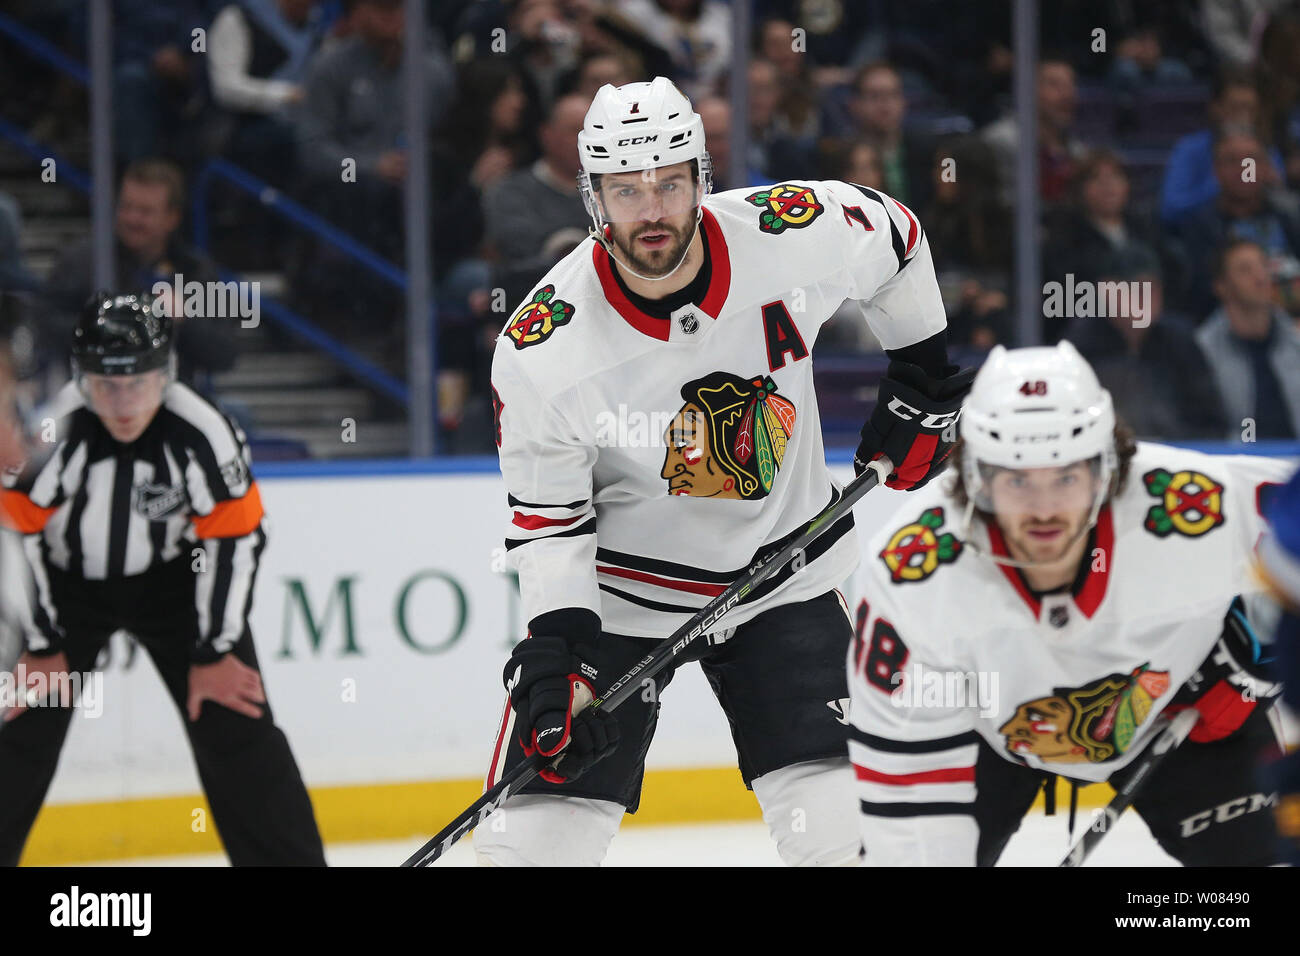 Chicago Blackhawks Brent Seabrook waits for the faceoff against the St. Louis Blues at the Scottrade Center in St. Louis on April 4, 2018. Photo by Bill Greenblatt/UPI - Stock Image